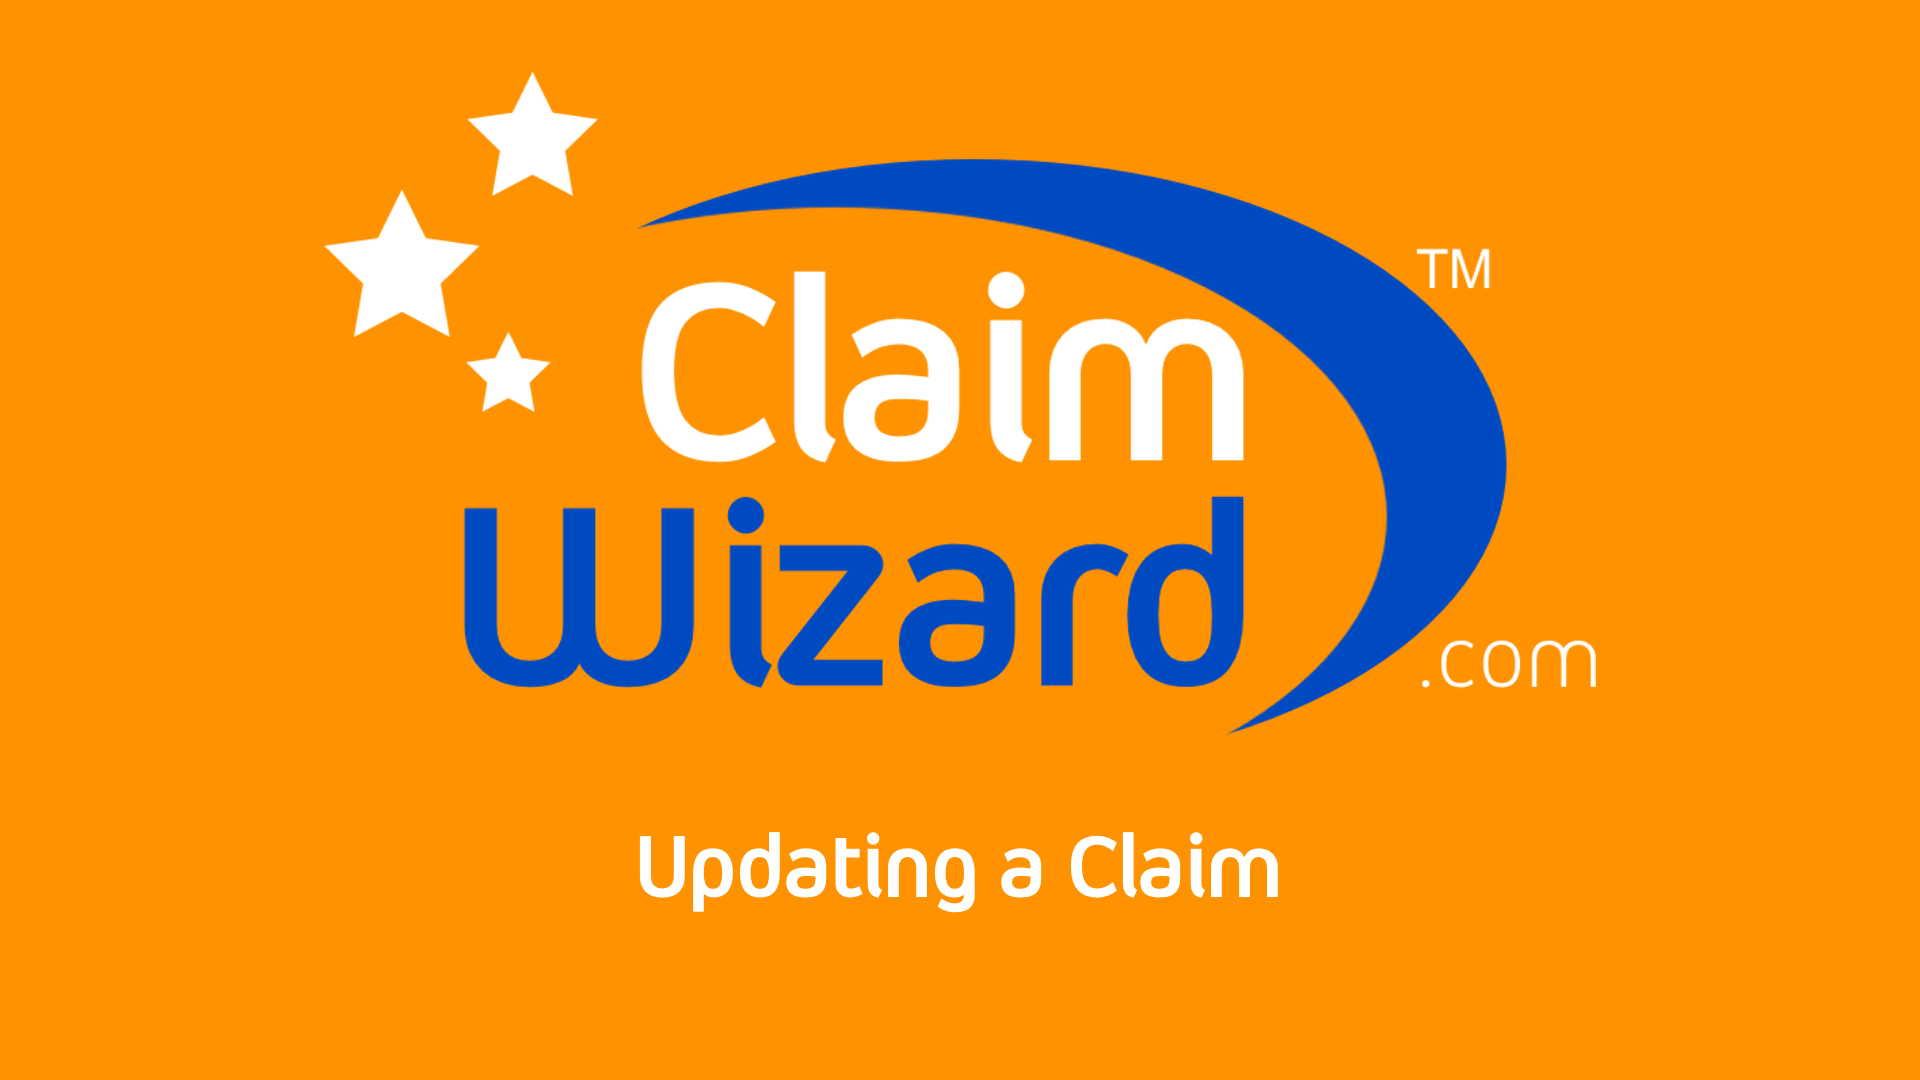 Updating a Claim